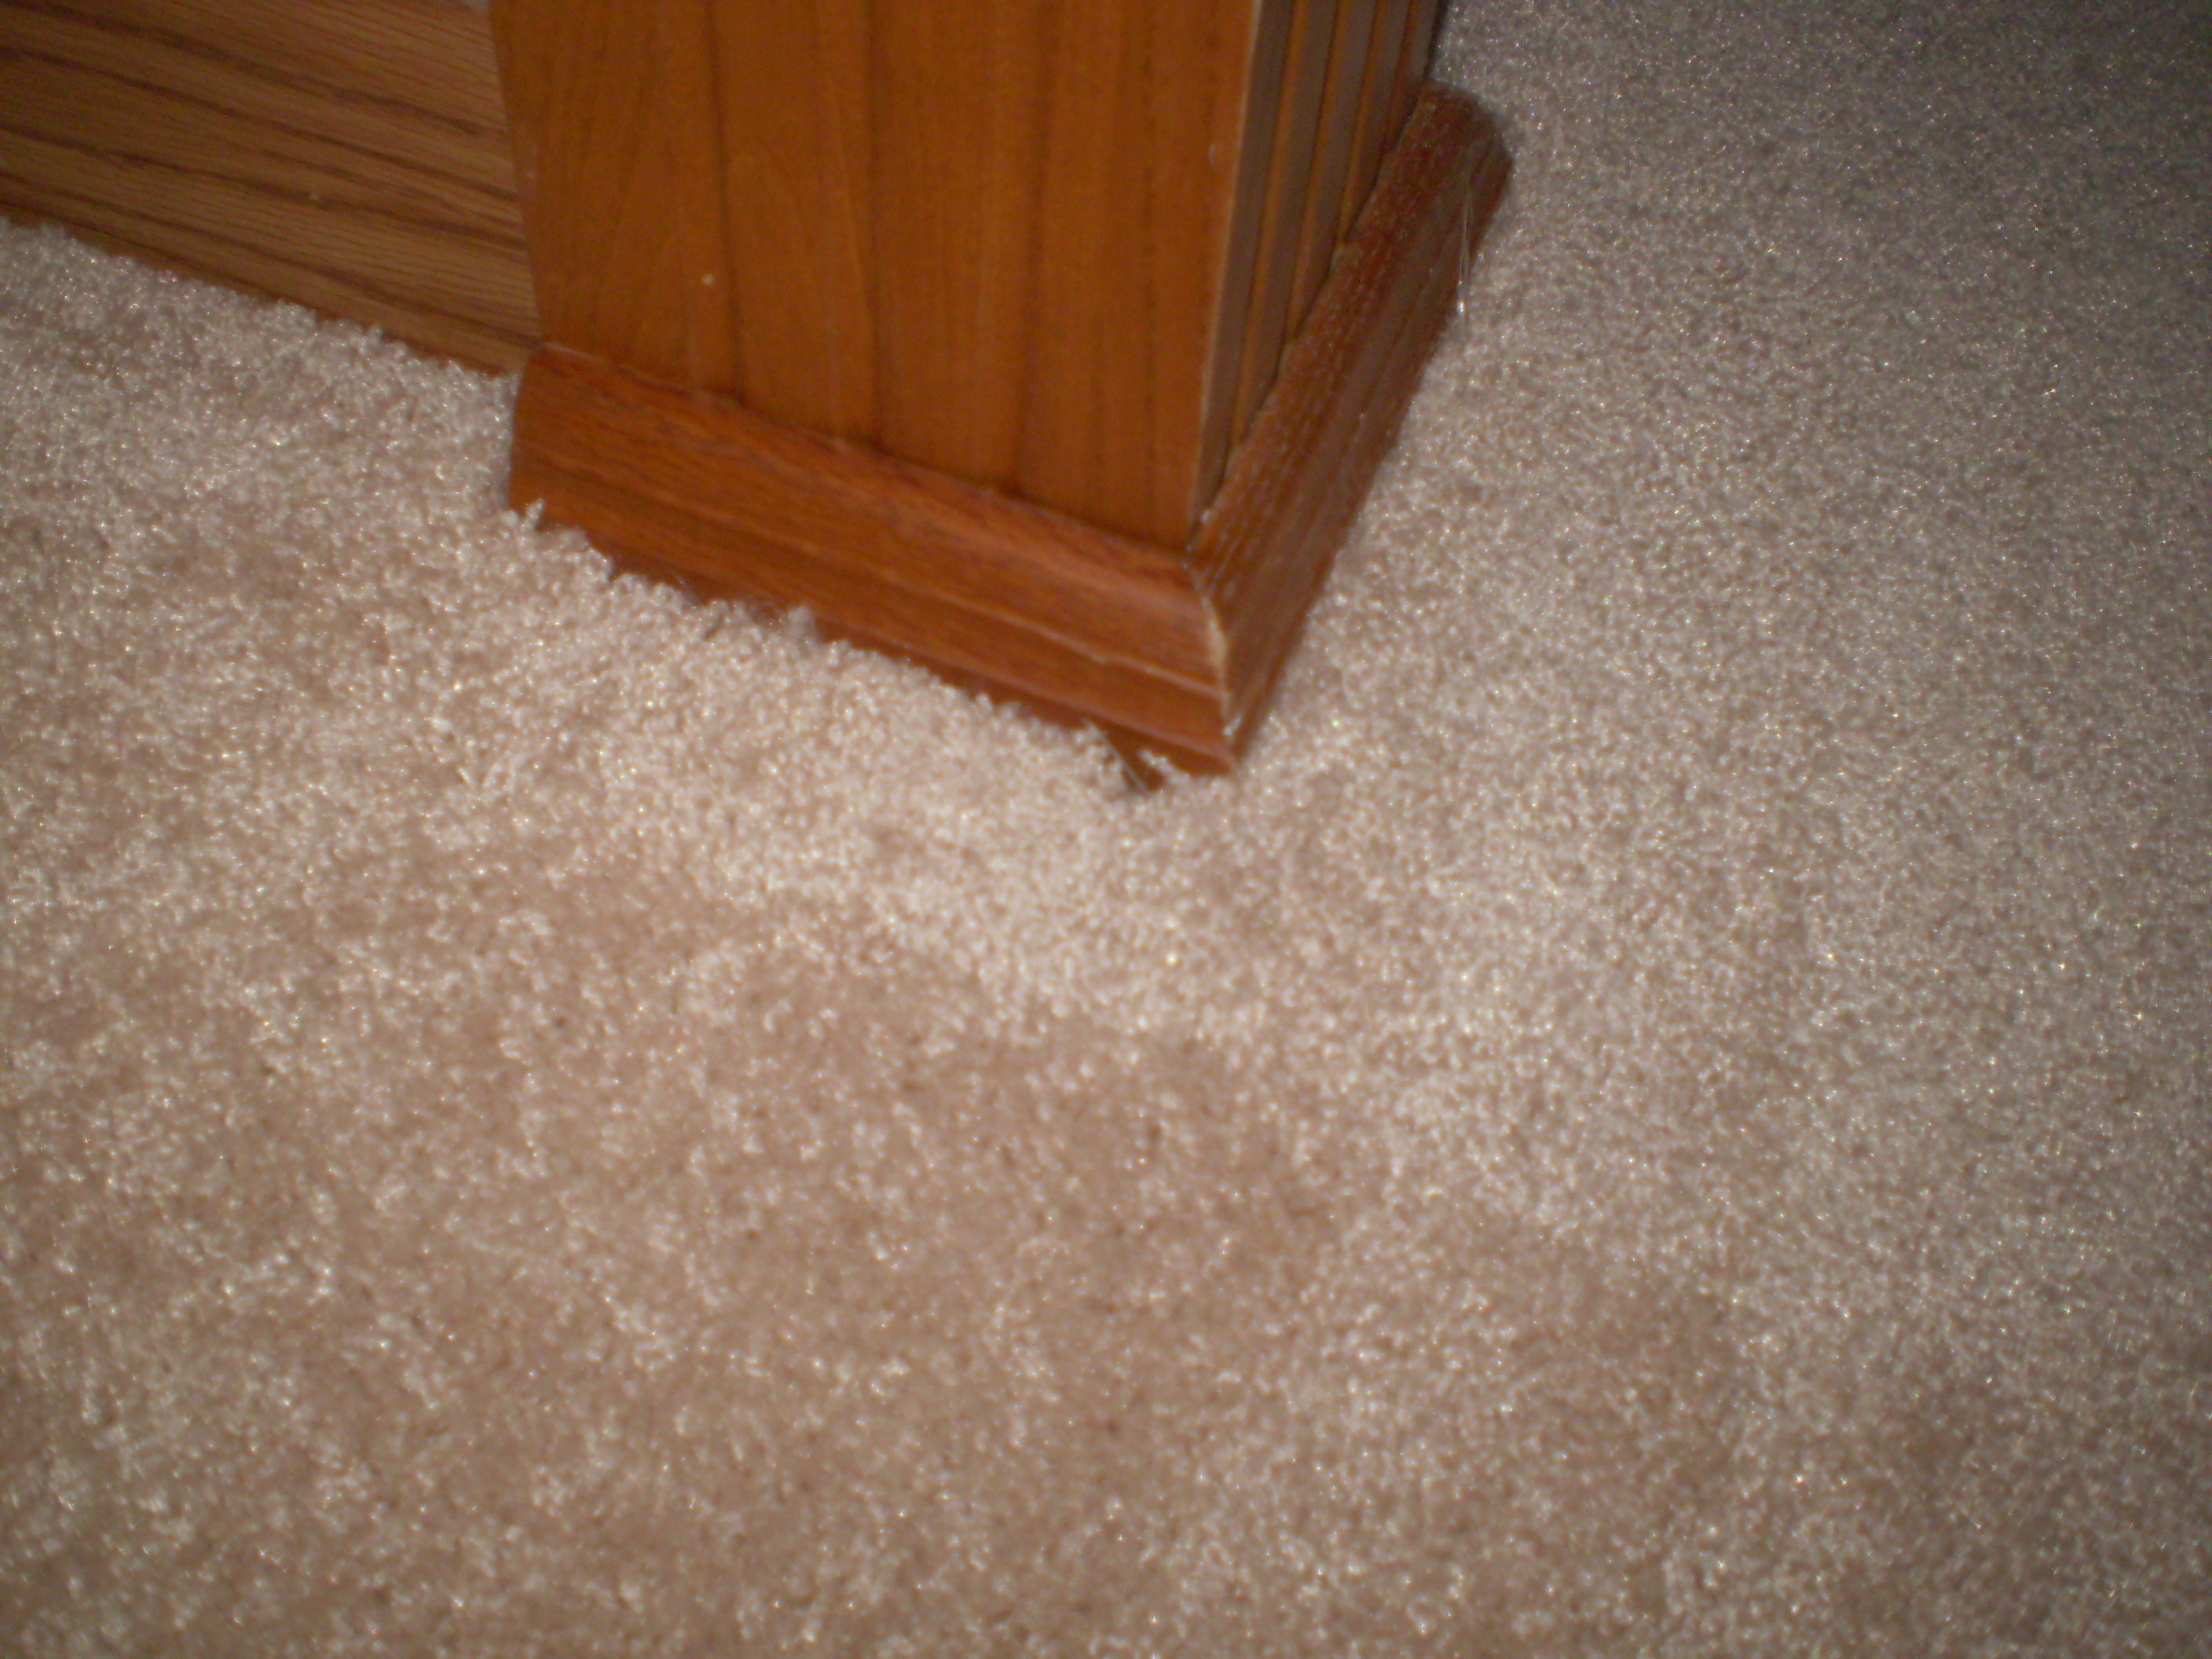 the first of may we selected new carpet from the branson home depot we set up for the measure to be done a couple days later